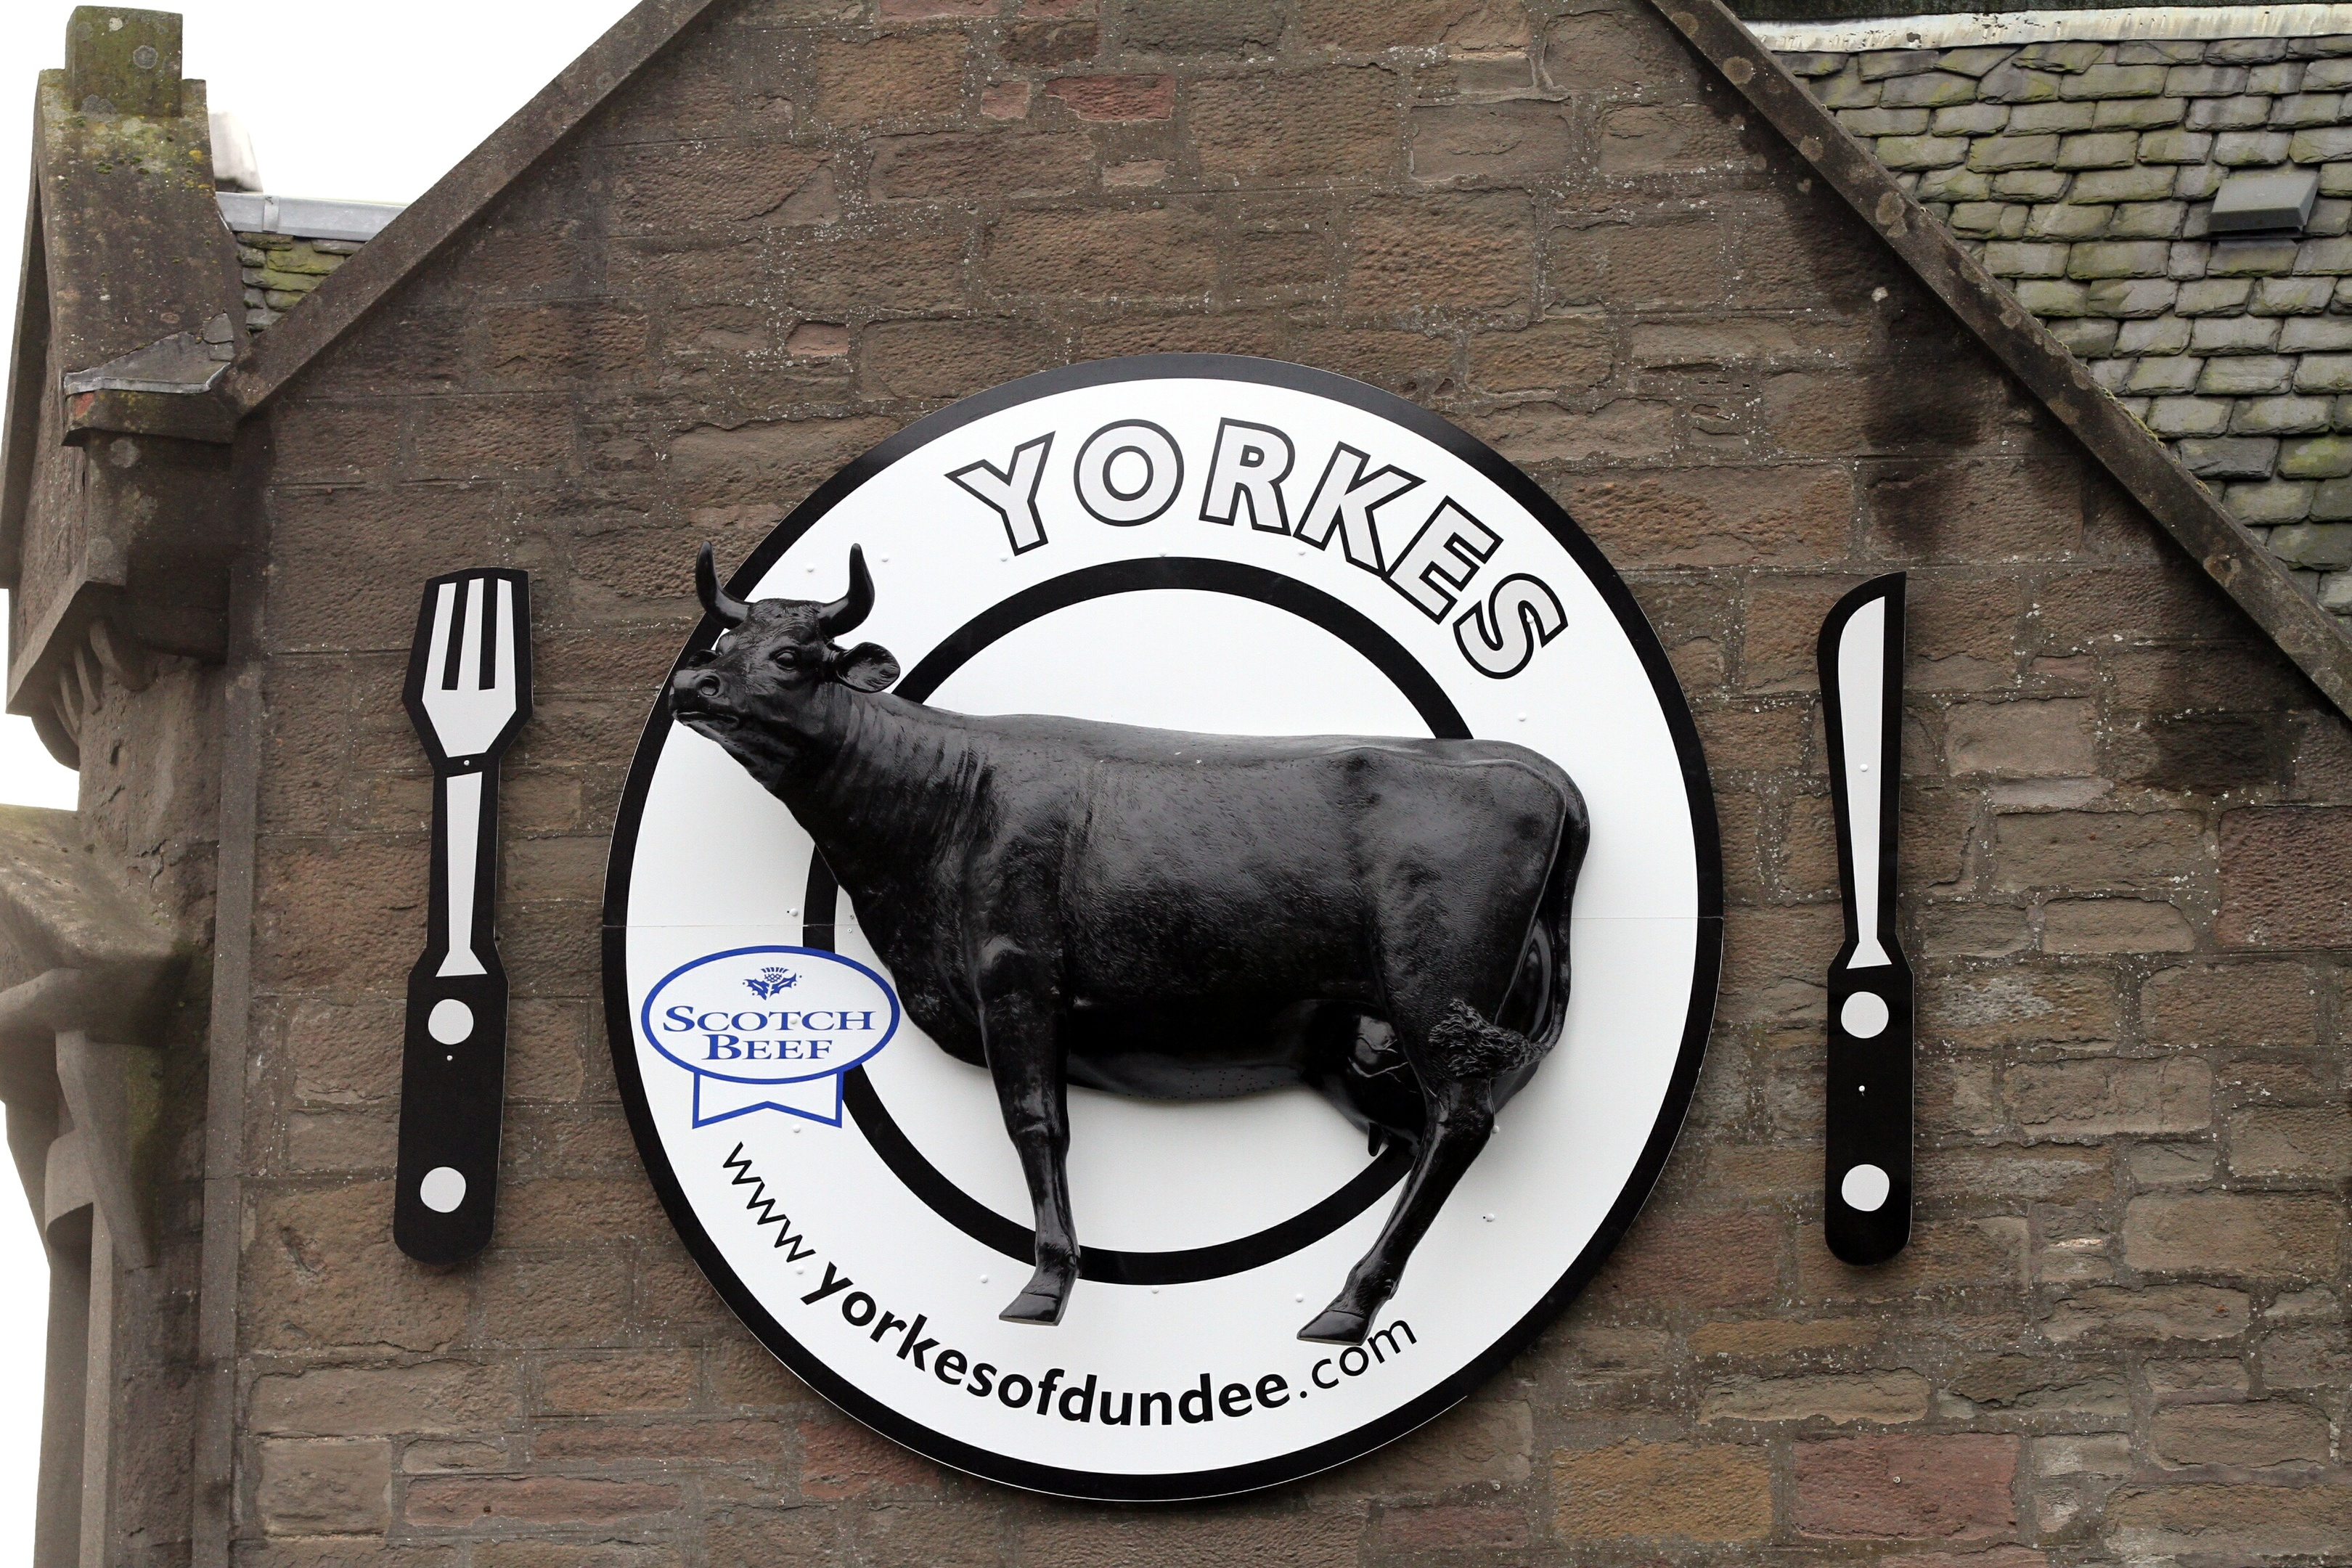 Yorkes of Dundee on Strathmartine Road